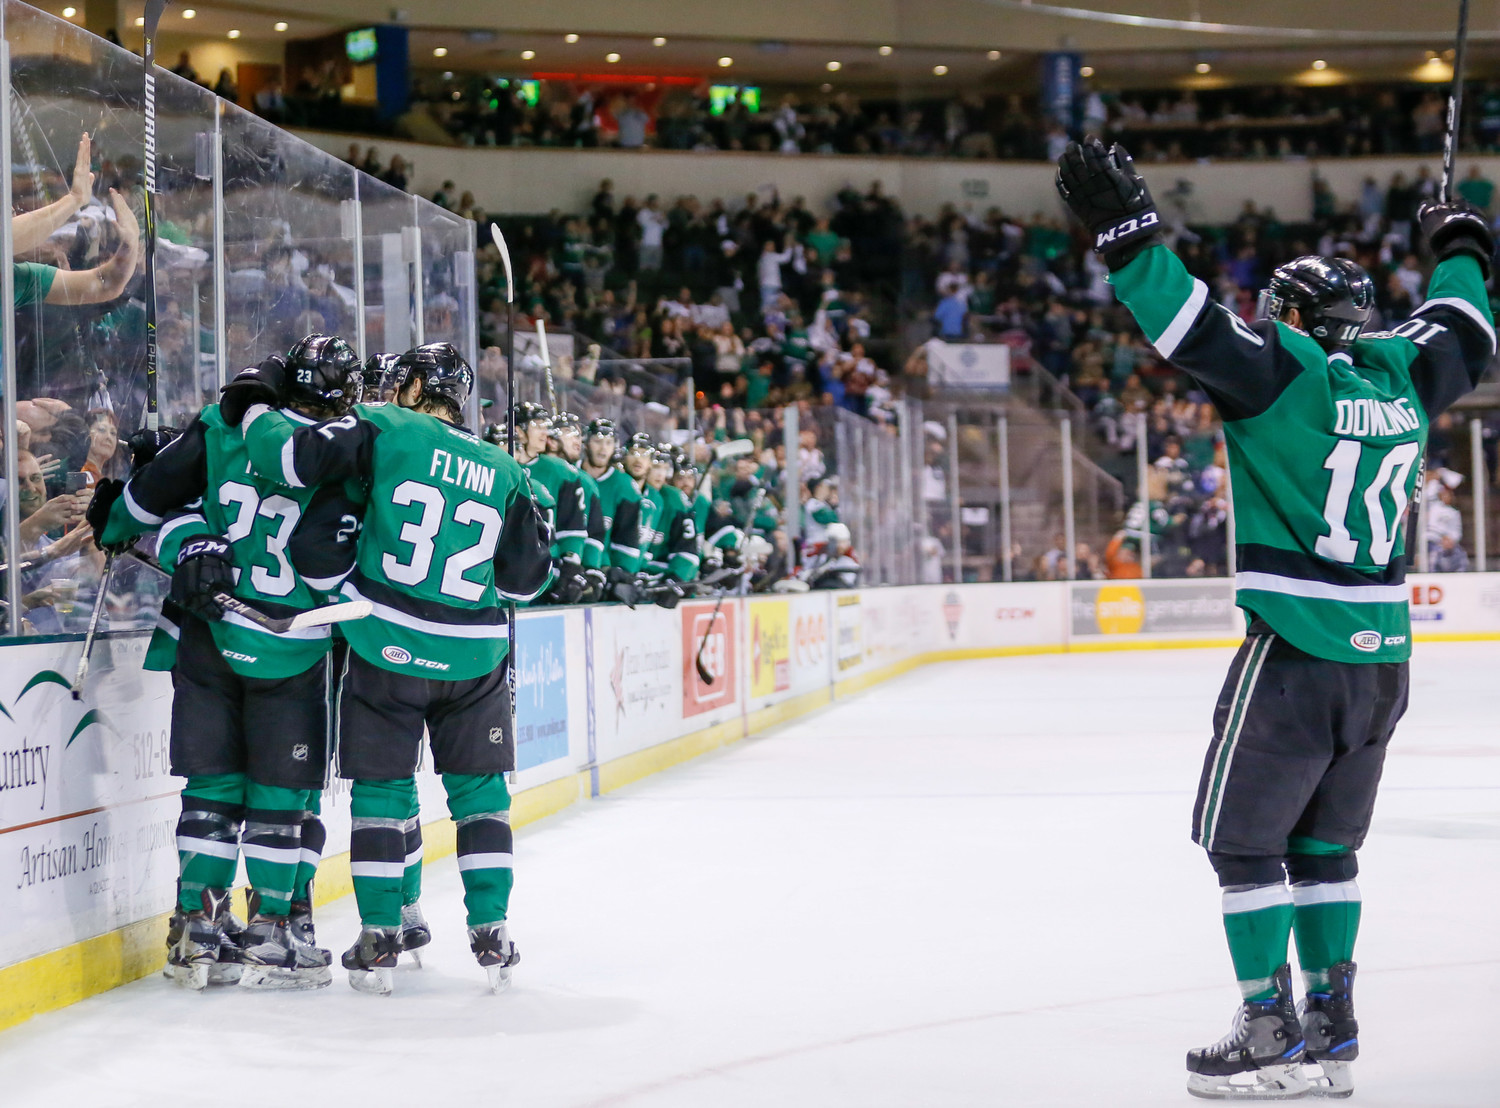 The Texas Stars beat the Tucson Roadrunners 3-2 in overtime on Friday night to win the series 4-1 and advance to the Western Conference Finals for the third time in nine years.